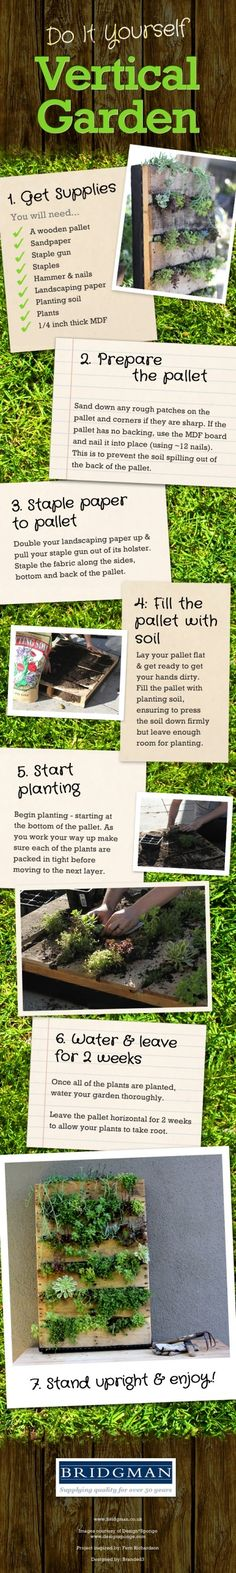 DIY Gardening: How to create a Vertical Wall Garden DIY vertical garden wall infographic Container Gardening, Gardening Tips, Companion Gardening, Vegetable Gardening, Vertical Pallet Garden, Verticle Garden, Garden Pallet, Diy Pallet, Pallet Fence